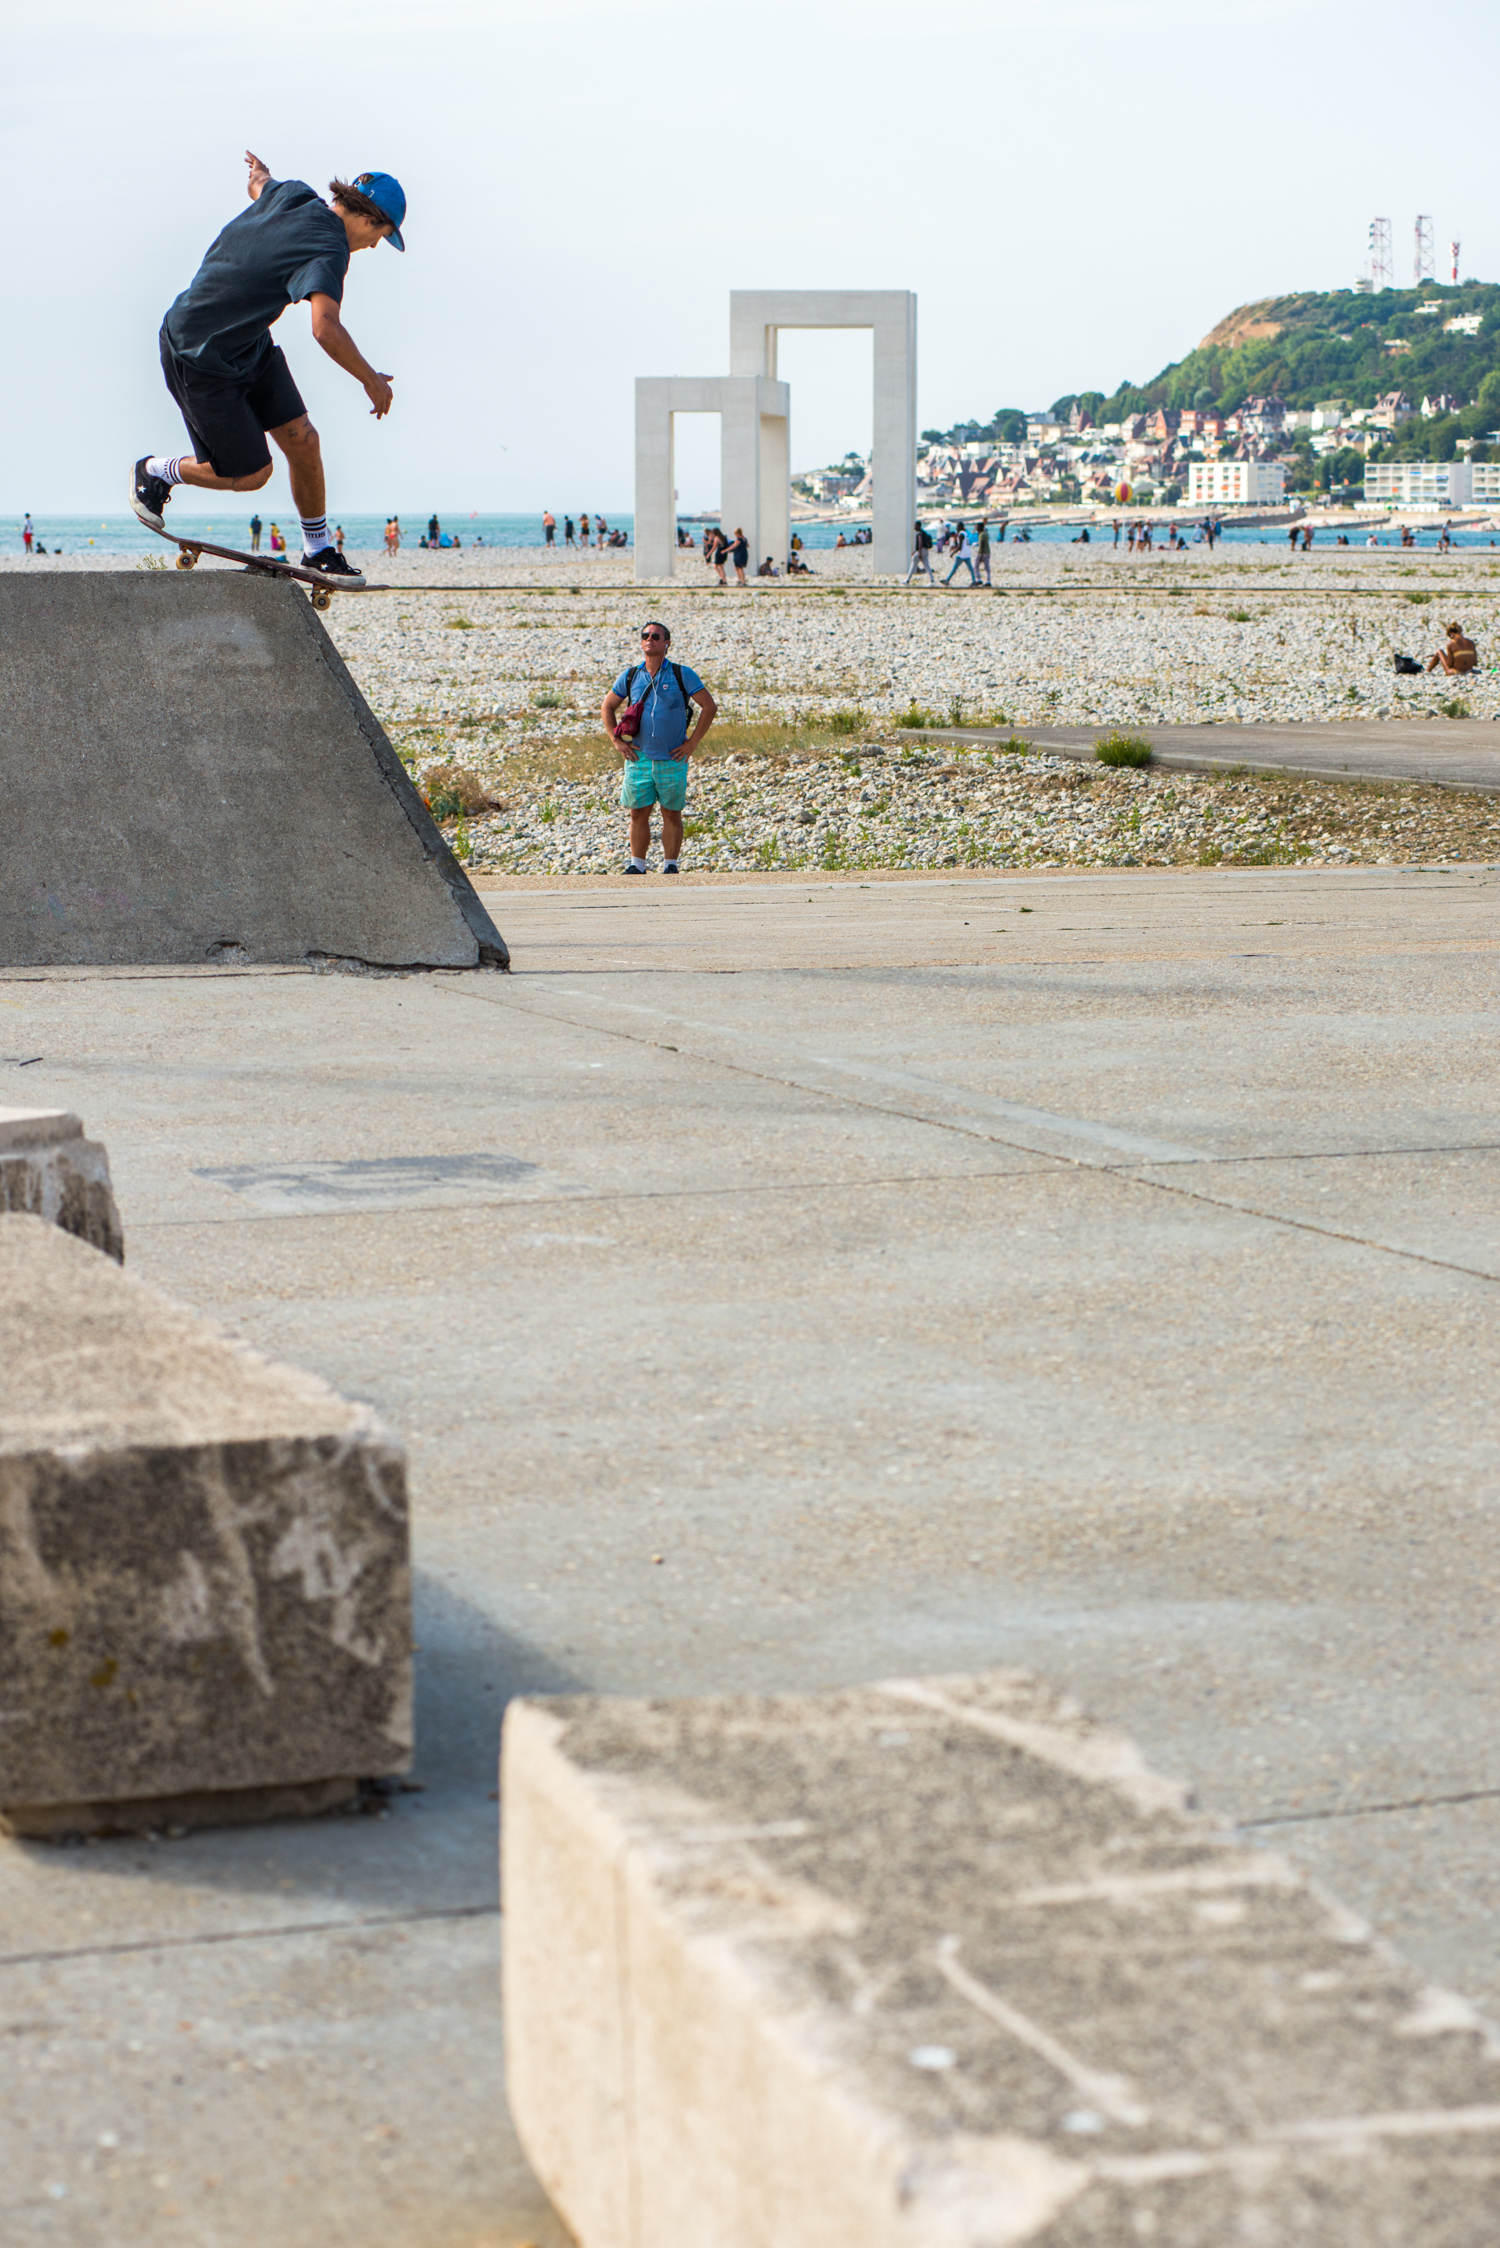 2020.10.14_lucas_languasco__wally_backlip_le_havre_titus_architektour__bd_BLOG.jpg